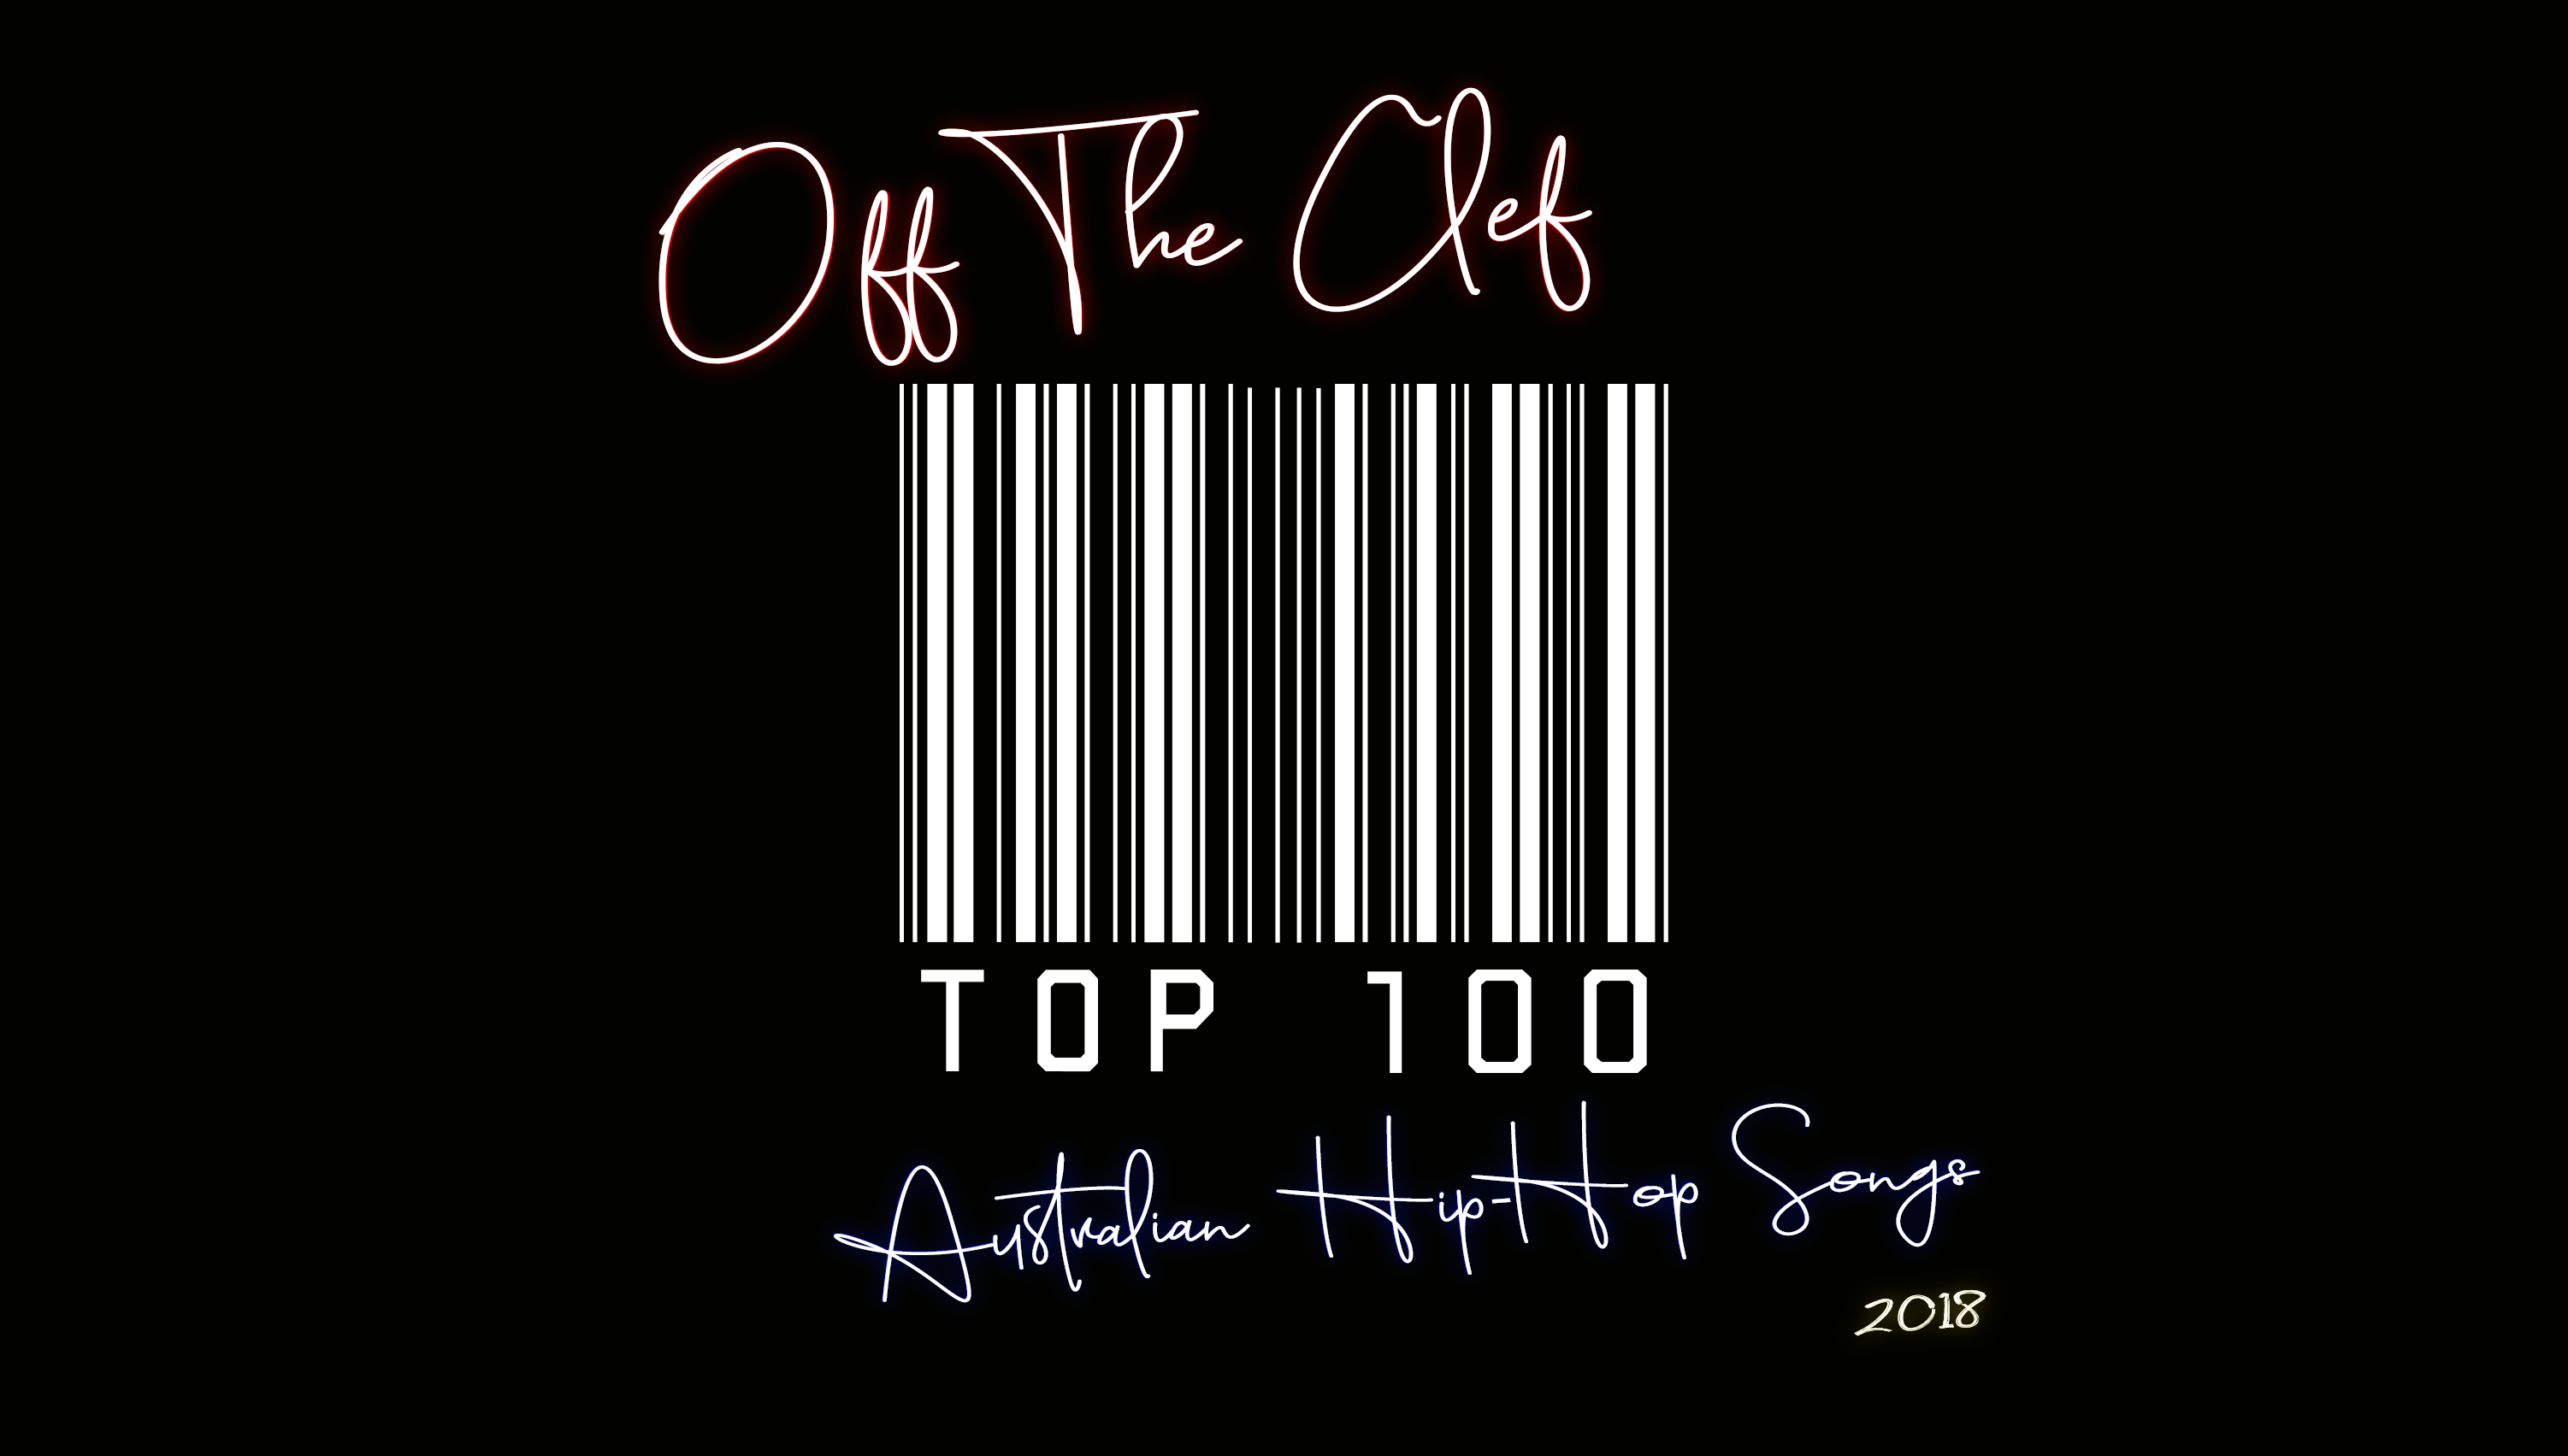 TOP 100 AUSTRALIAN HIP-HOP SONGS OF 2018 | OFF THE CLEF